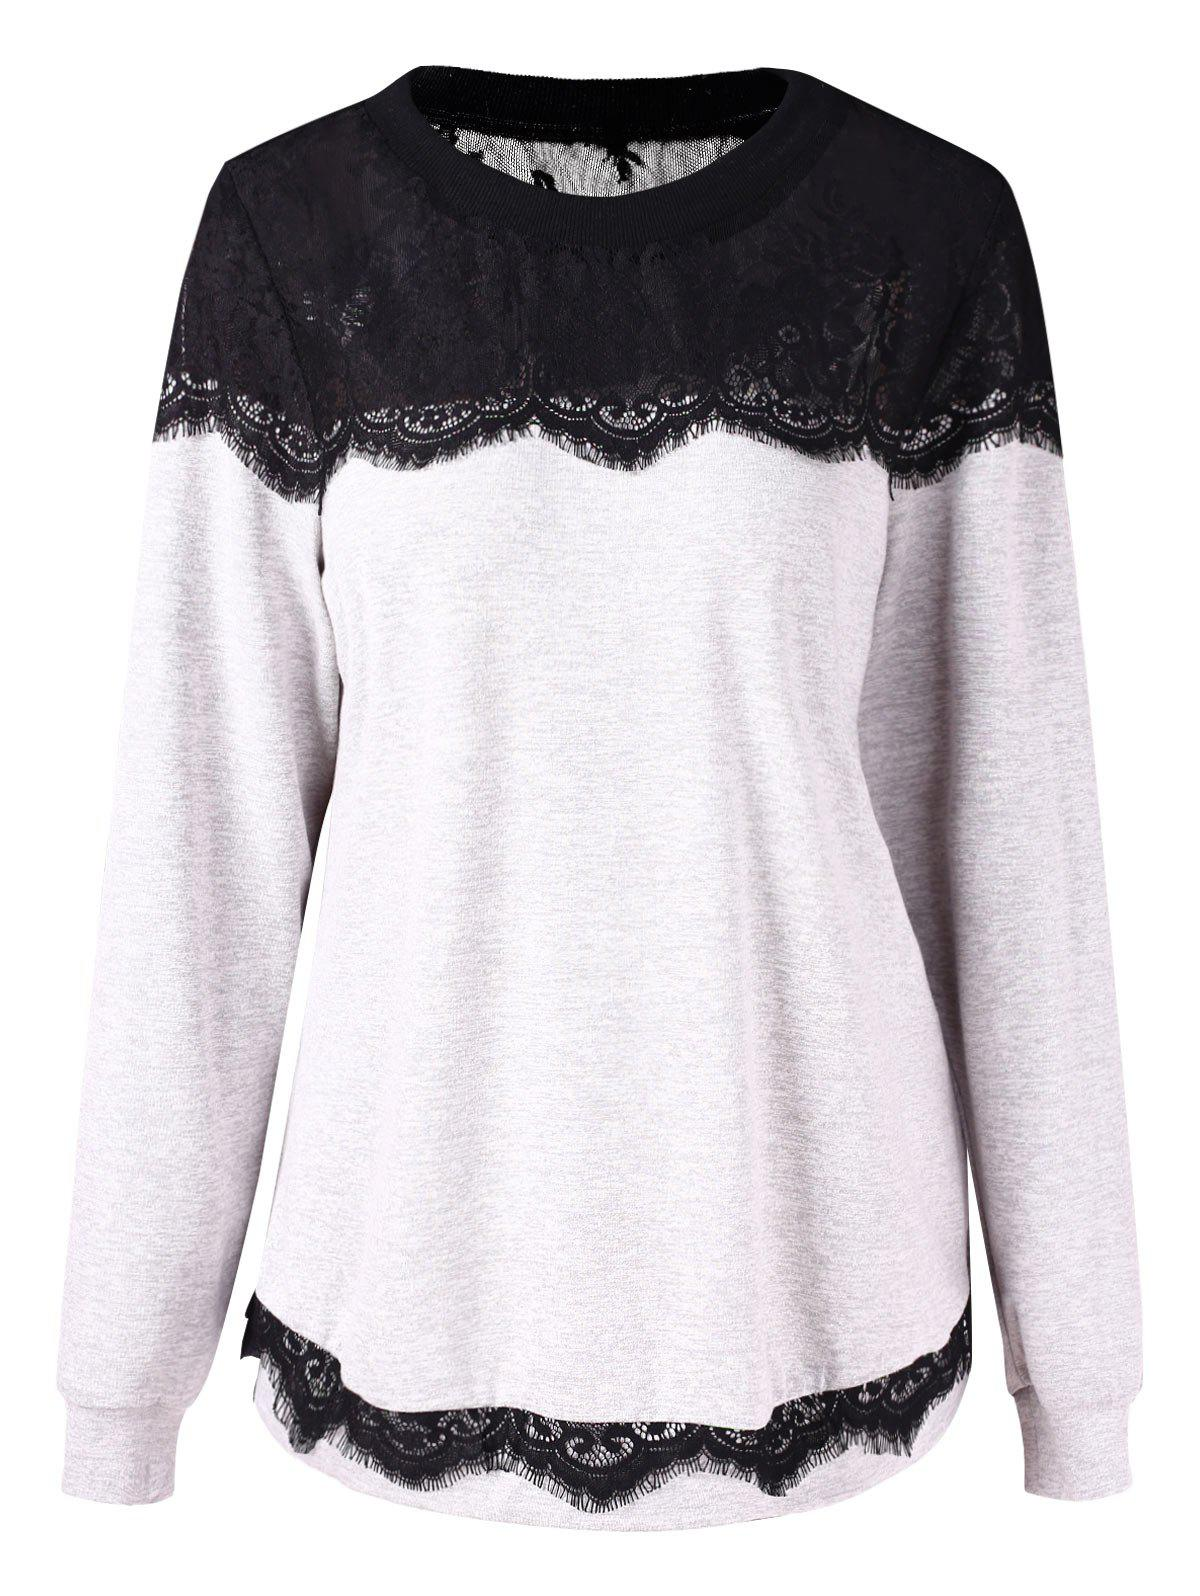 Plus Size Eyelash Lace Sweatshirt